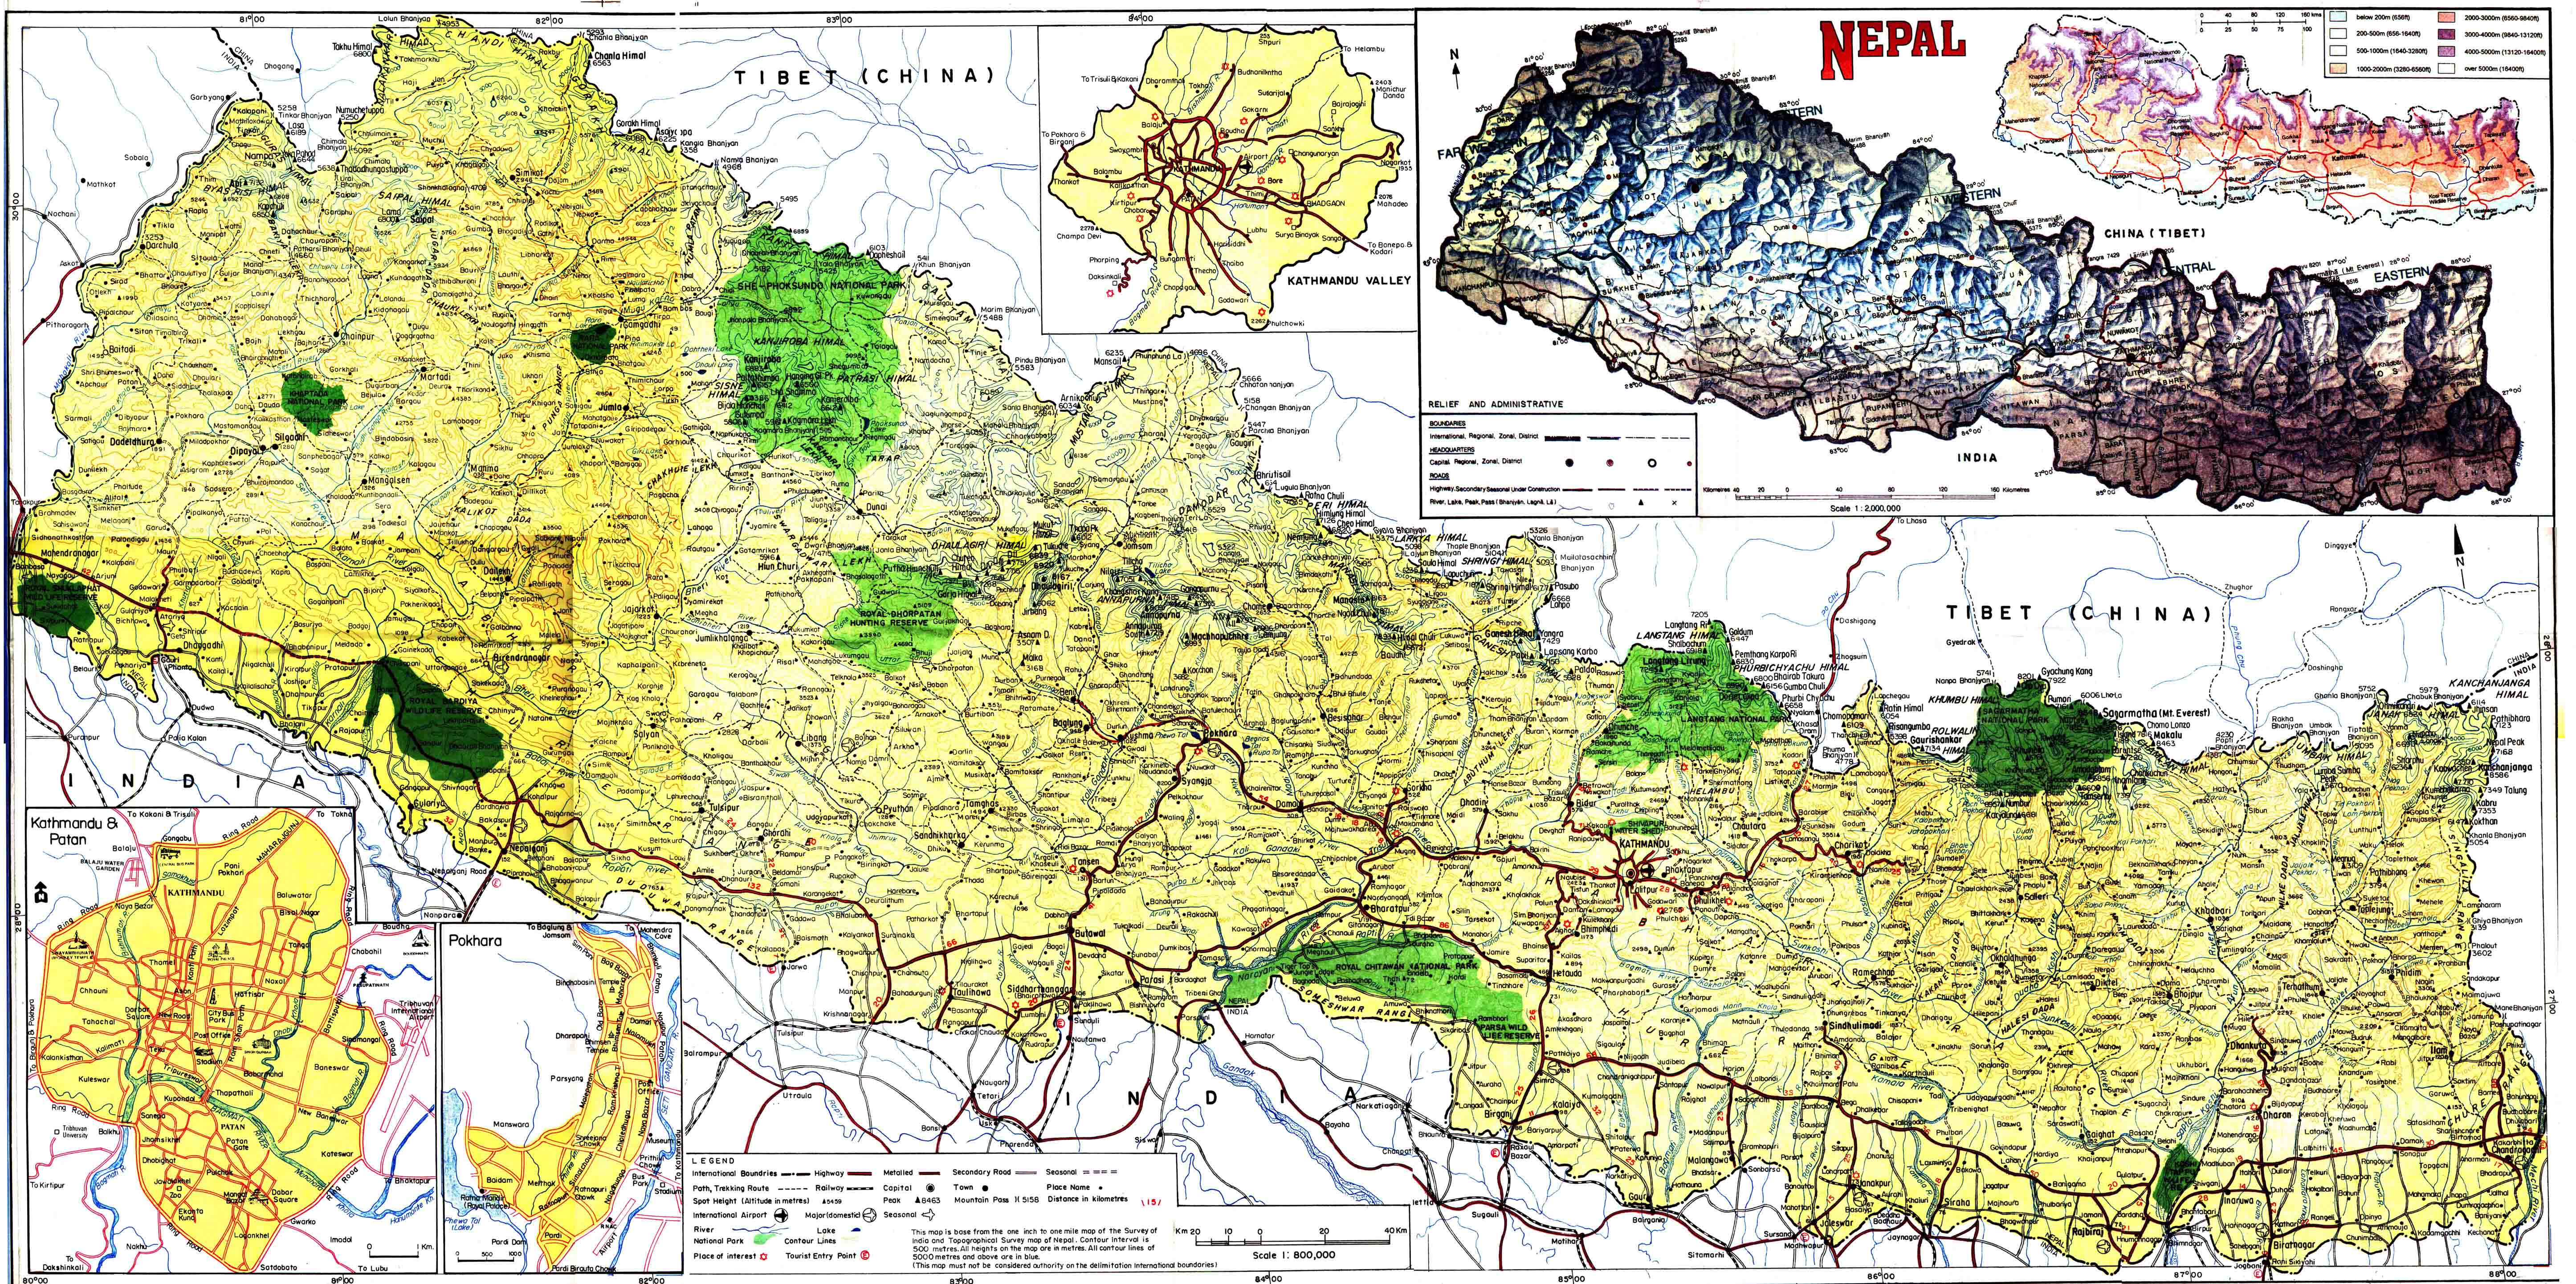 Damascus Asia Map Nepal Damascus World Map And Surrounding Cities - Nepal on map